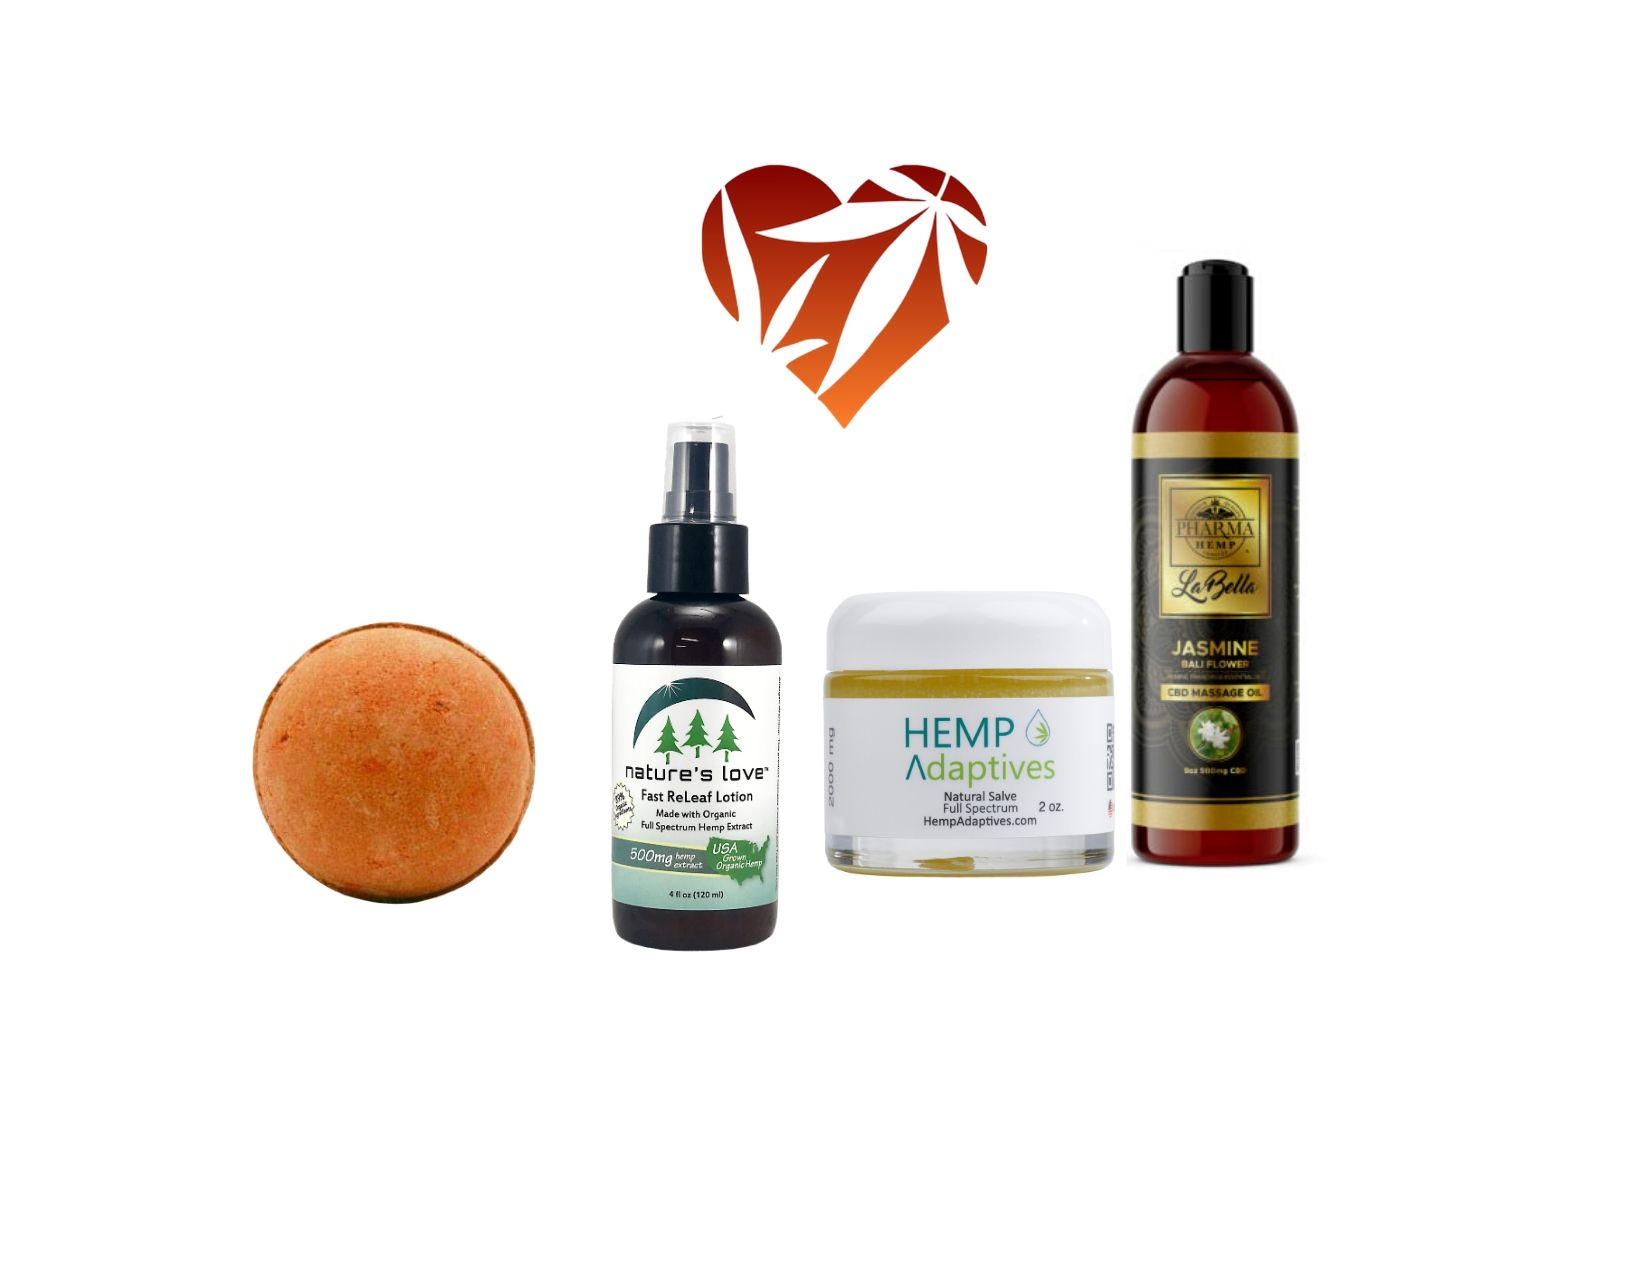 Hemp Oil Extract and Hemp Seed Topicals for Beauty and Pain relief